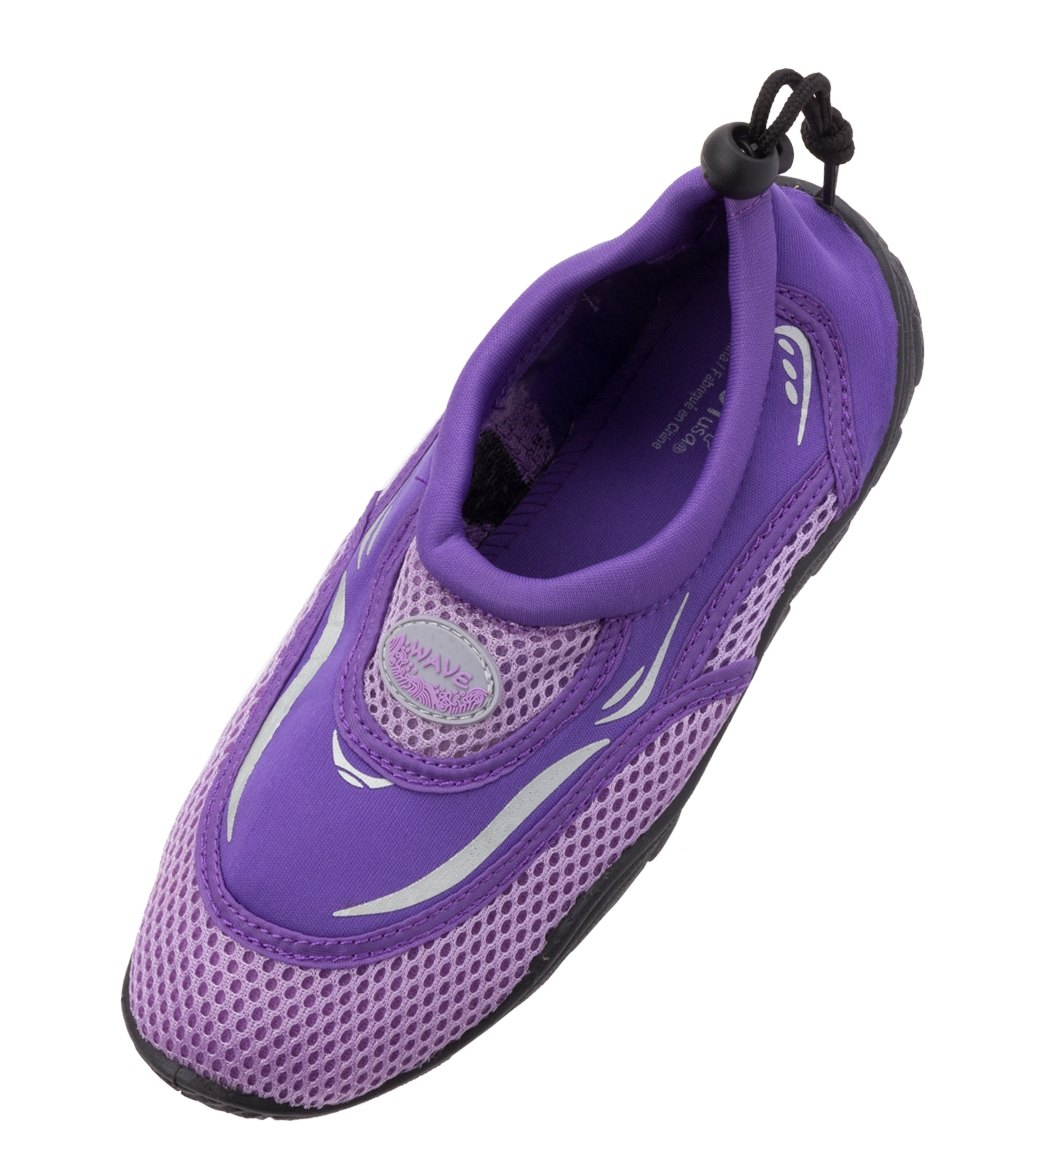 Water Shoes Men Women-For Aqua Surf/Beach/Wetsuit Trainers -Lightweight Mesh Areobic Water Shoes